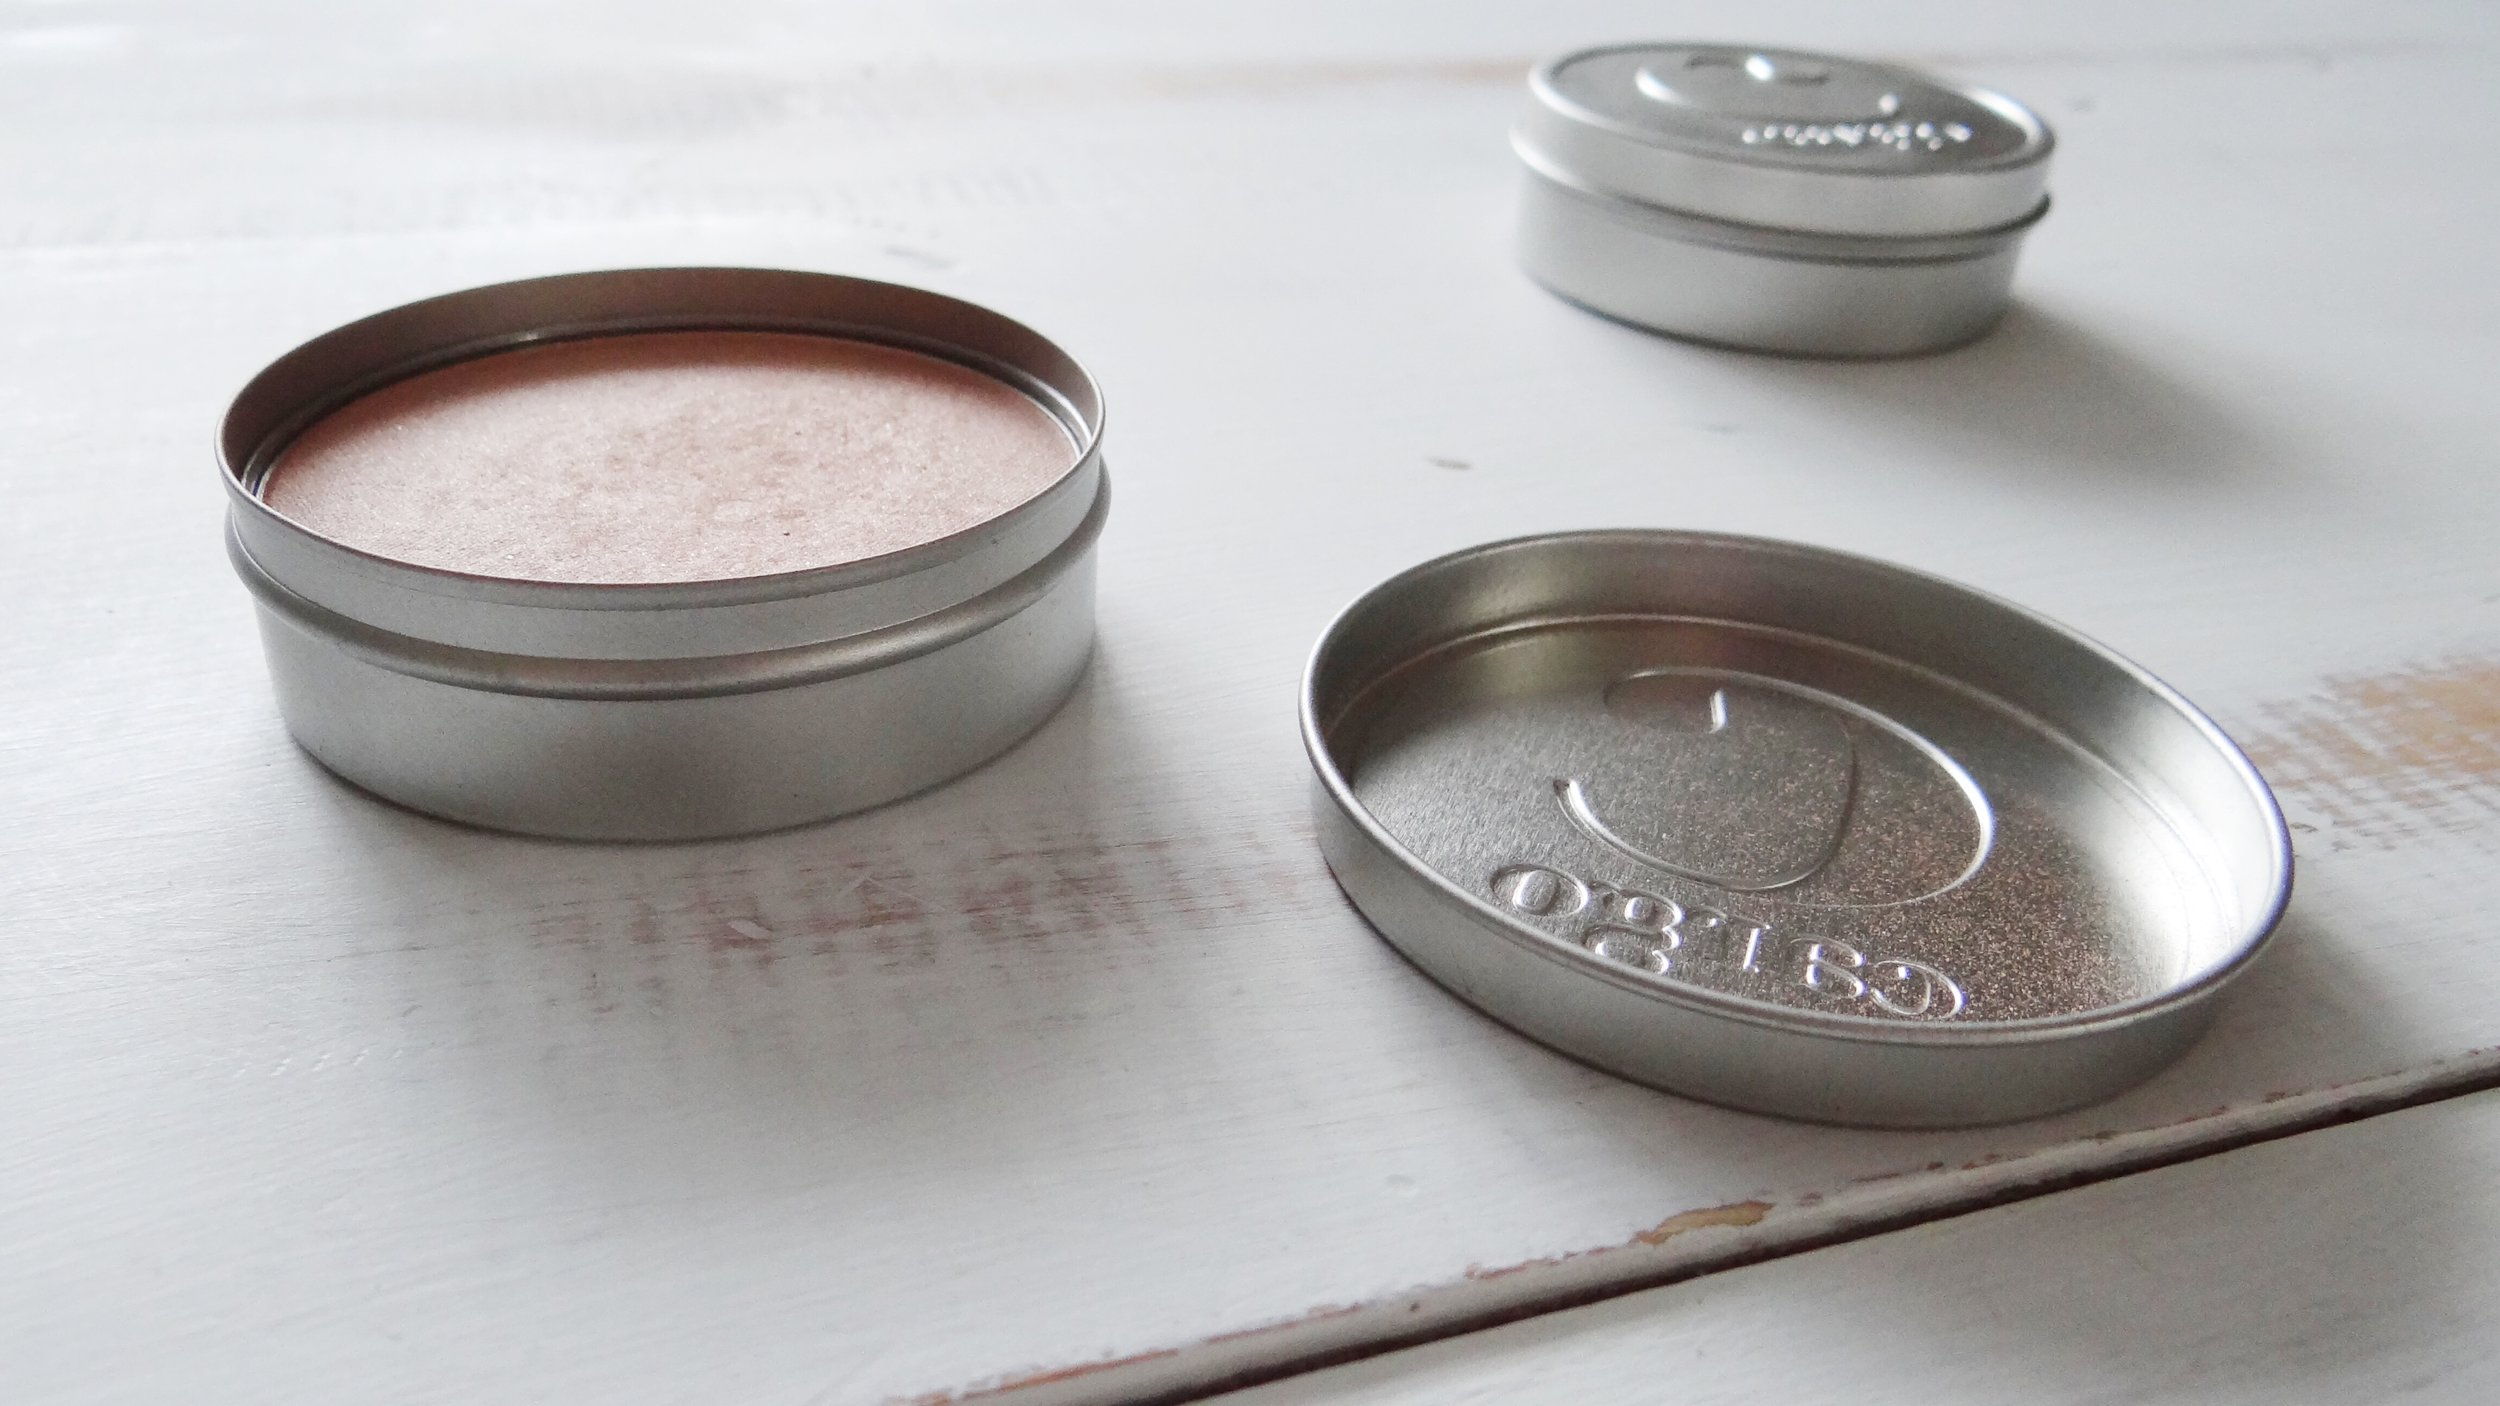 Top 5 Favourite Canadian (& Cruelty-Free!) Beauty Brands - Artistry by Jacquie, Ottawa Makeup Artist (Cargo Cosmetics)